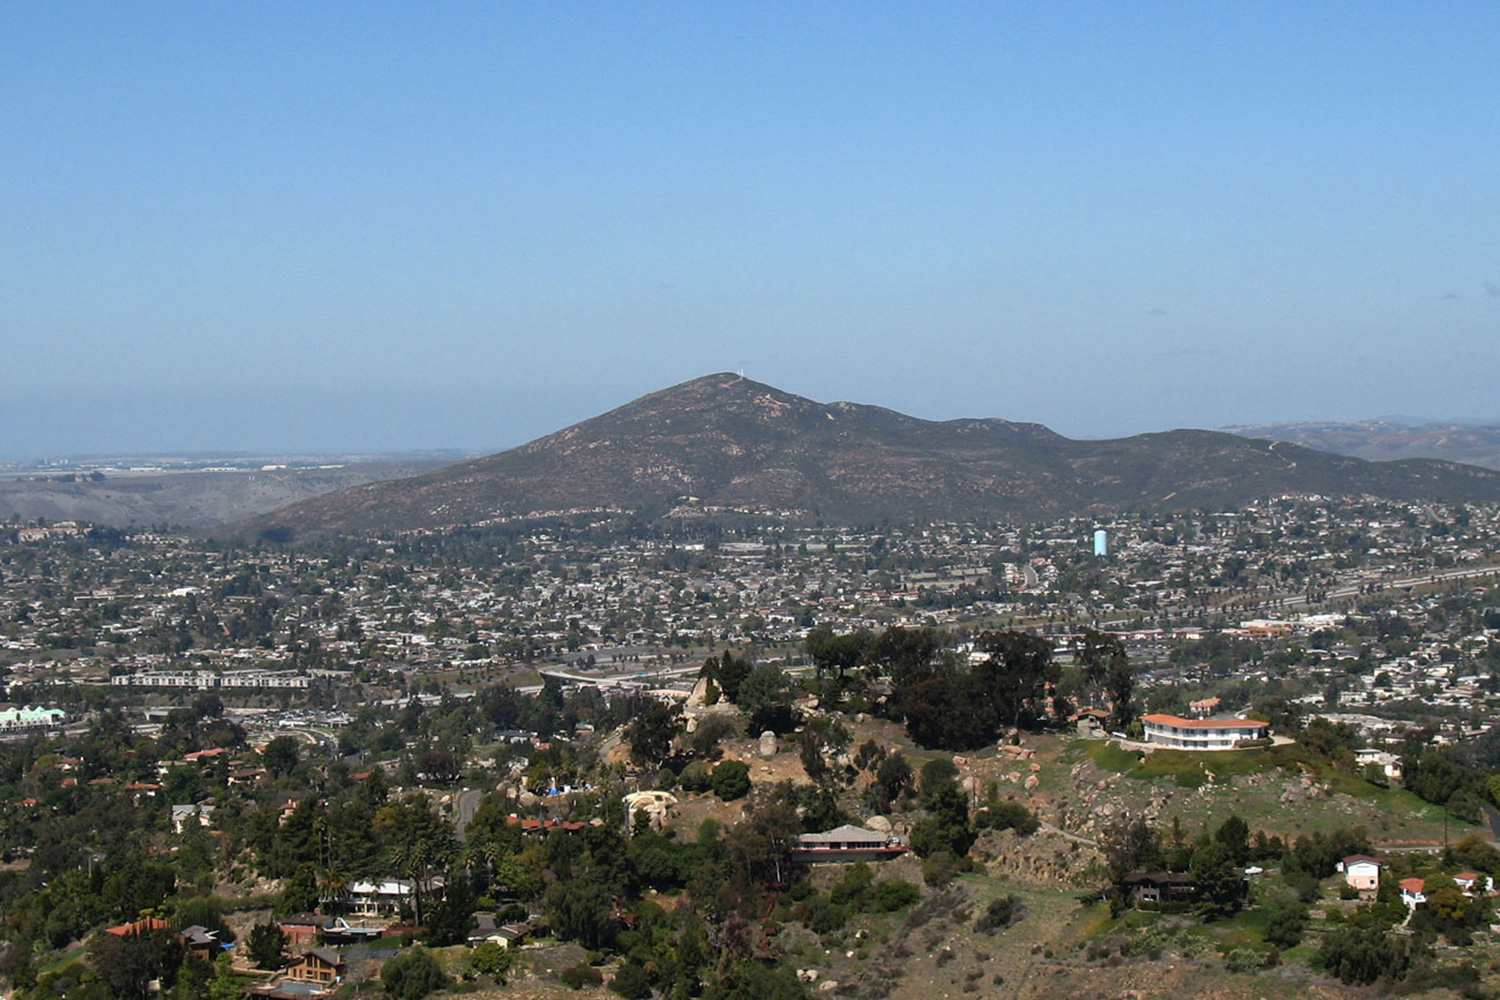 View of Cowles Mountain from Mt. Helix